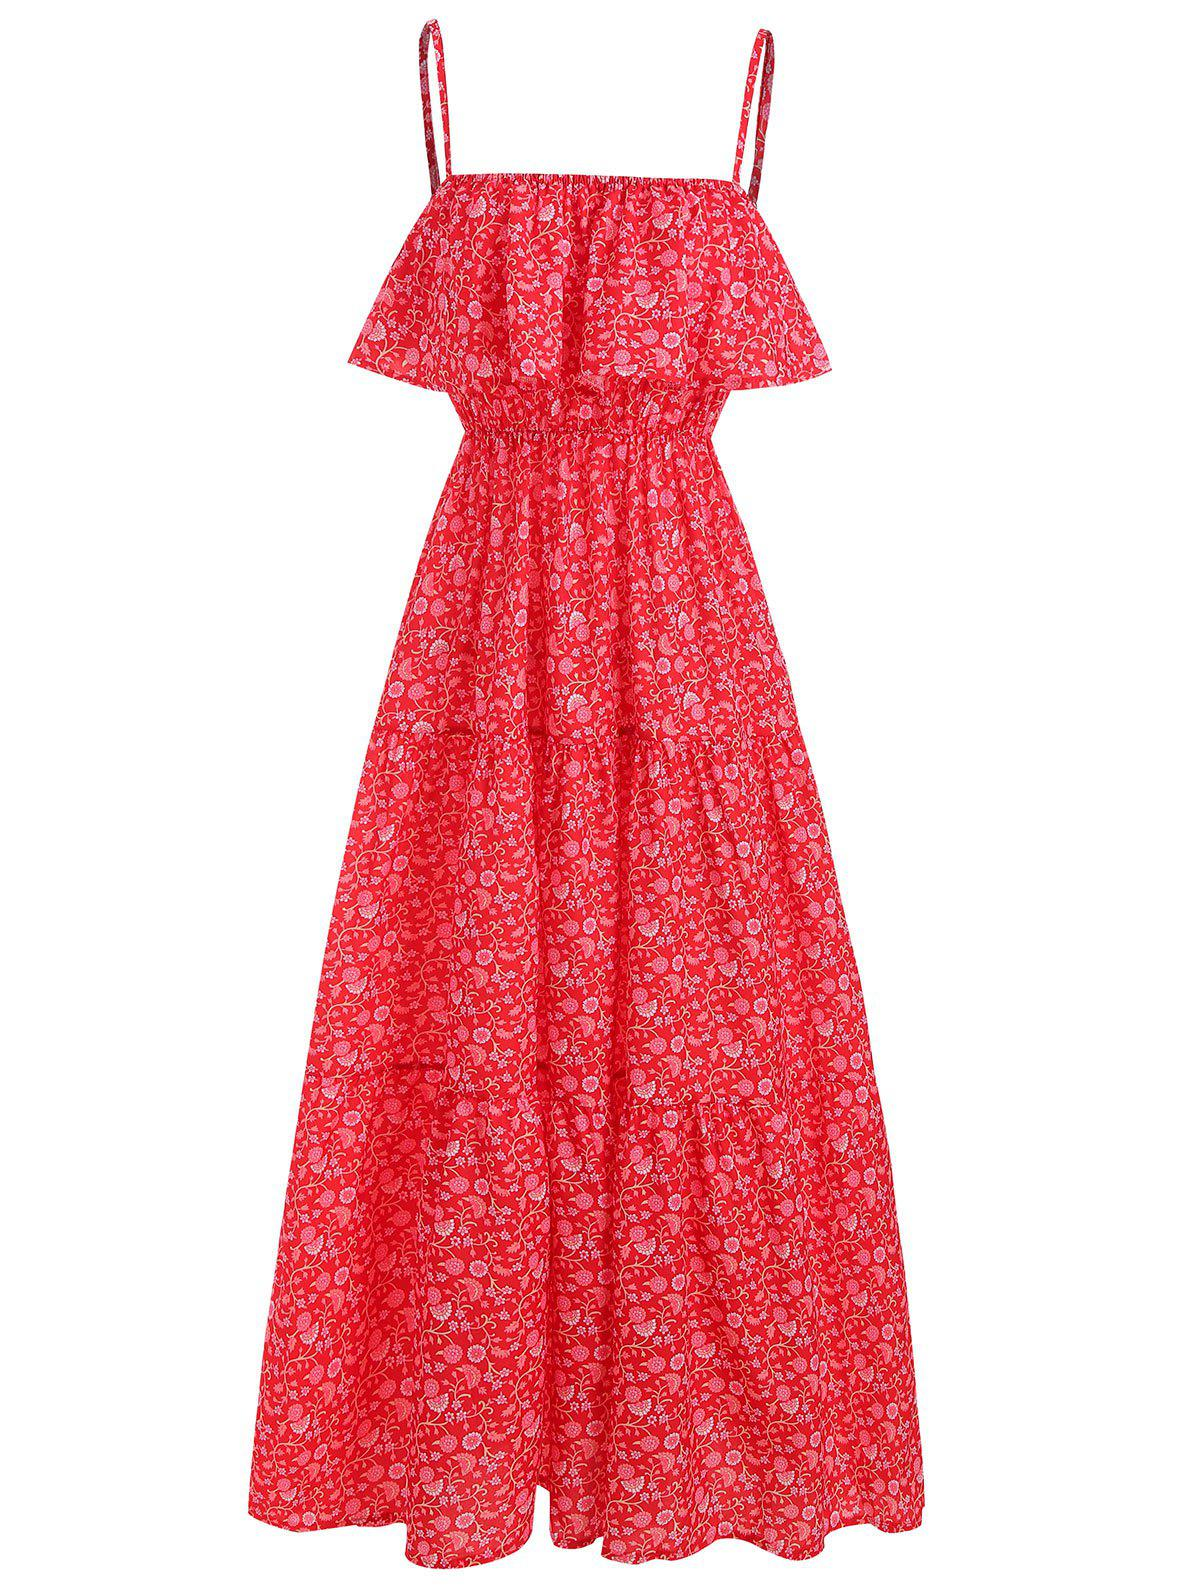 Floral Print Overlay Maxi Cami Dress - RED S